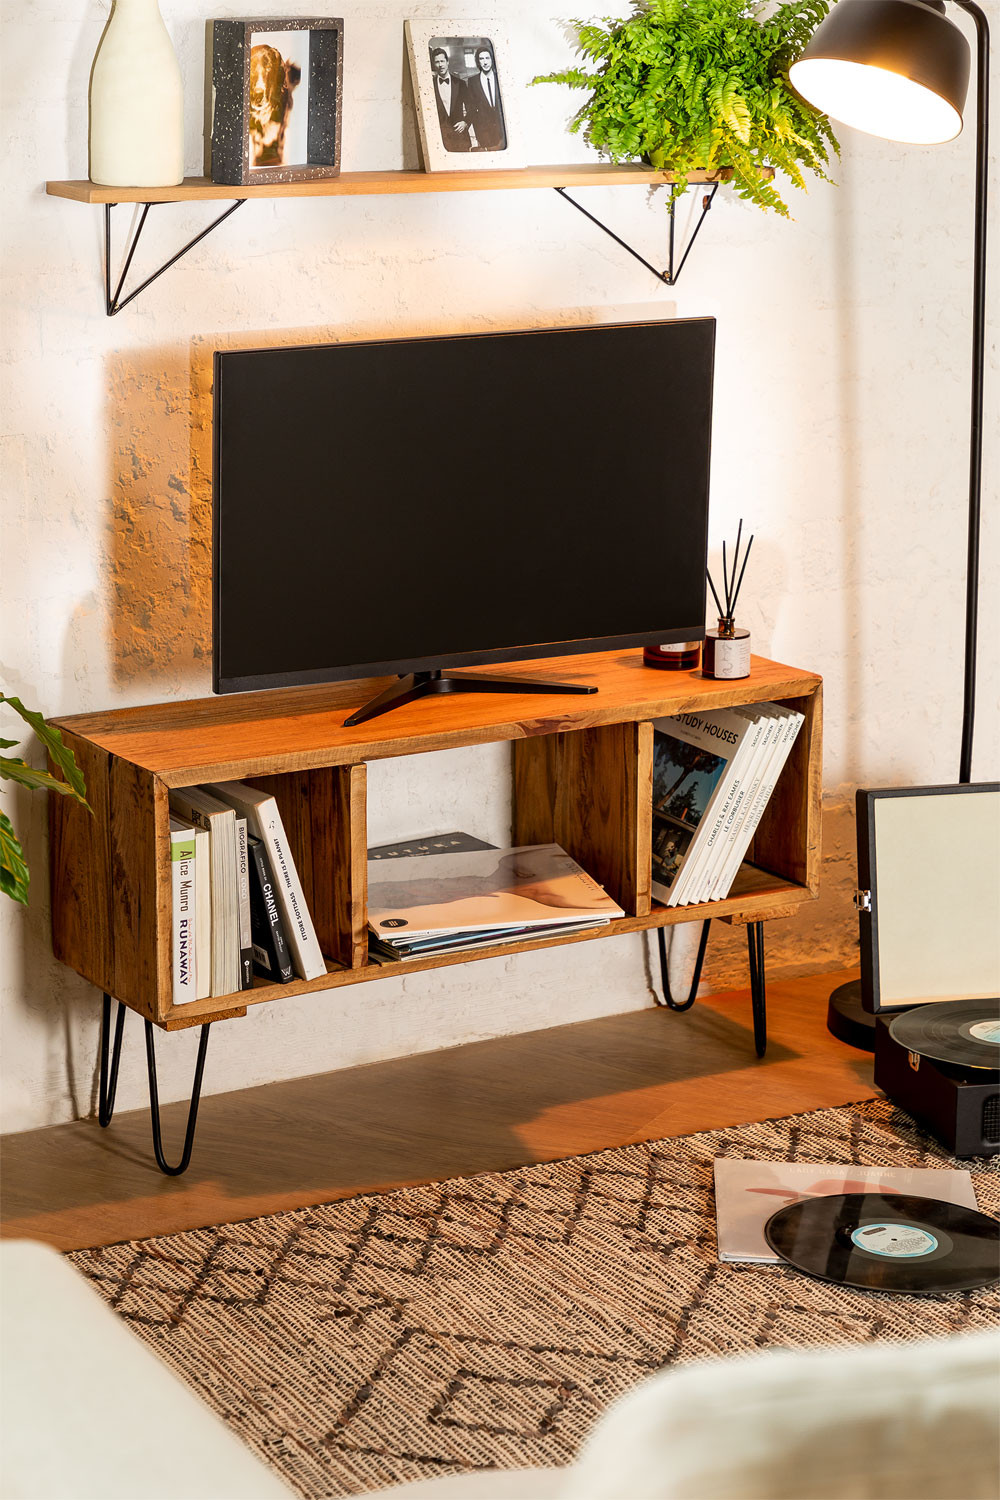 Recycled Wooden TV Cabinet Ferd, gallery image 1